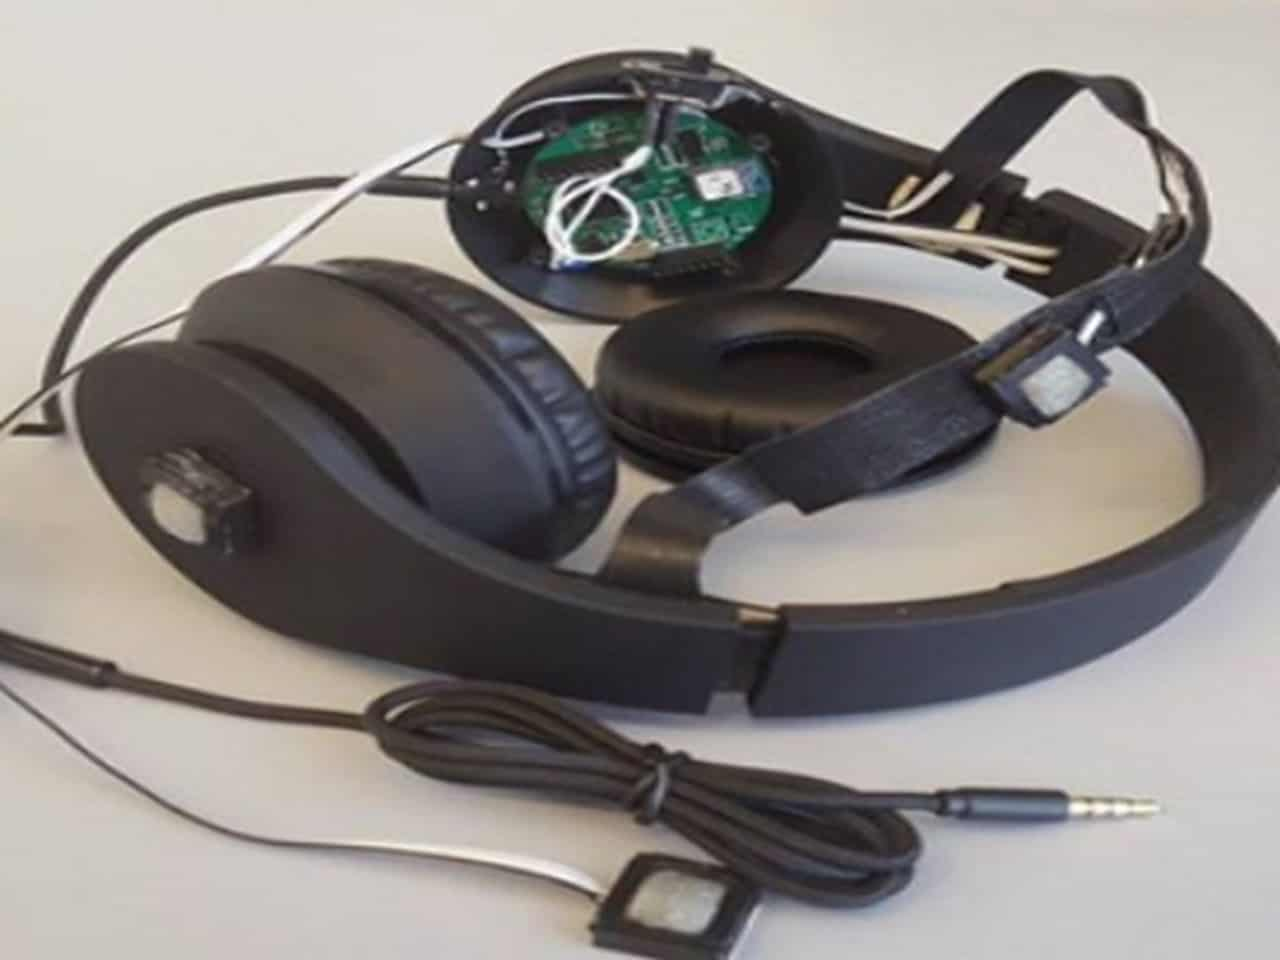 Smart headphones to save pedestrians from getting run over by vehicles